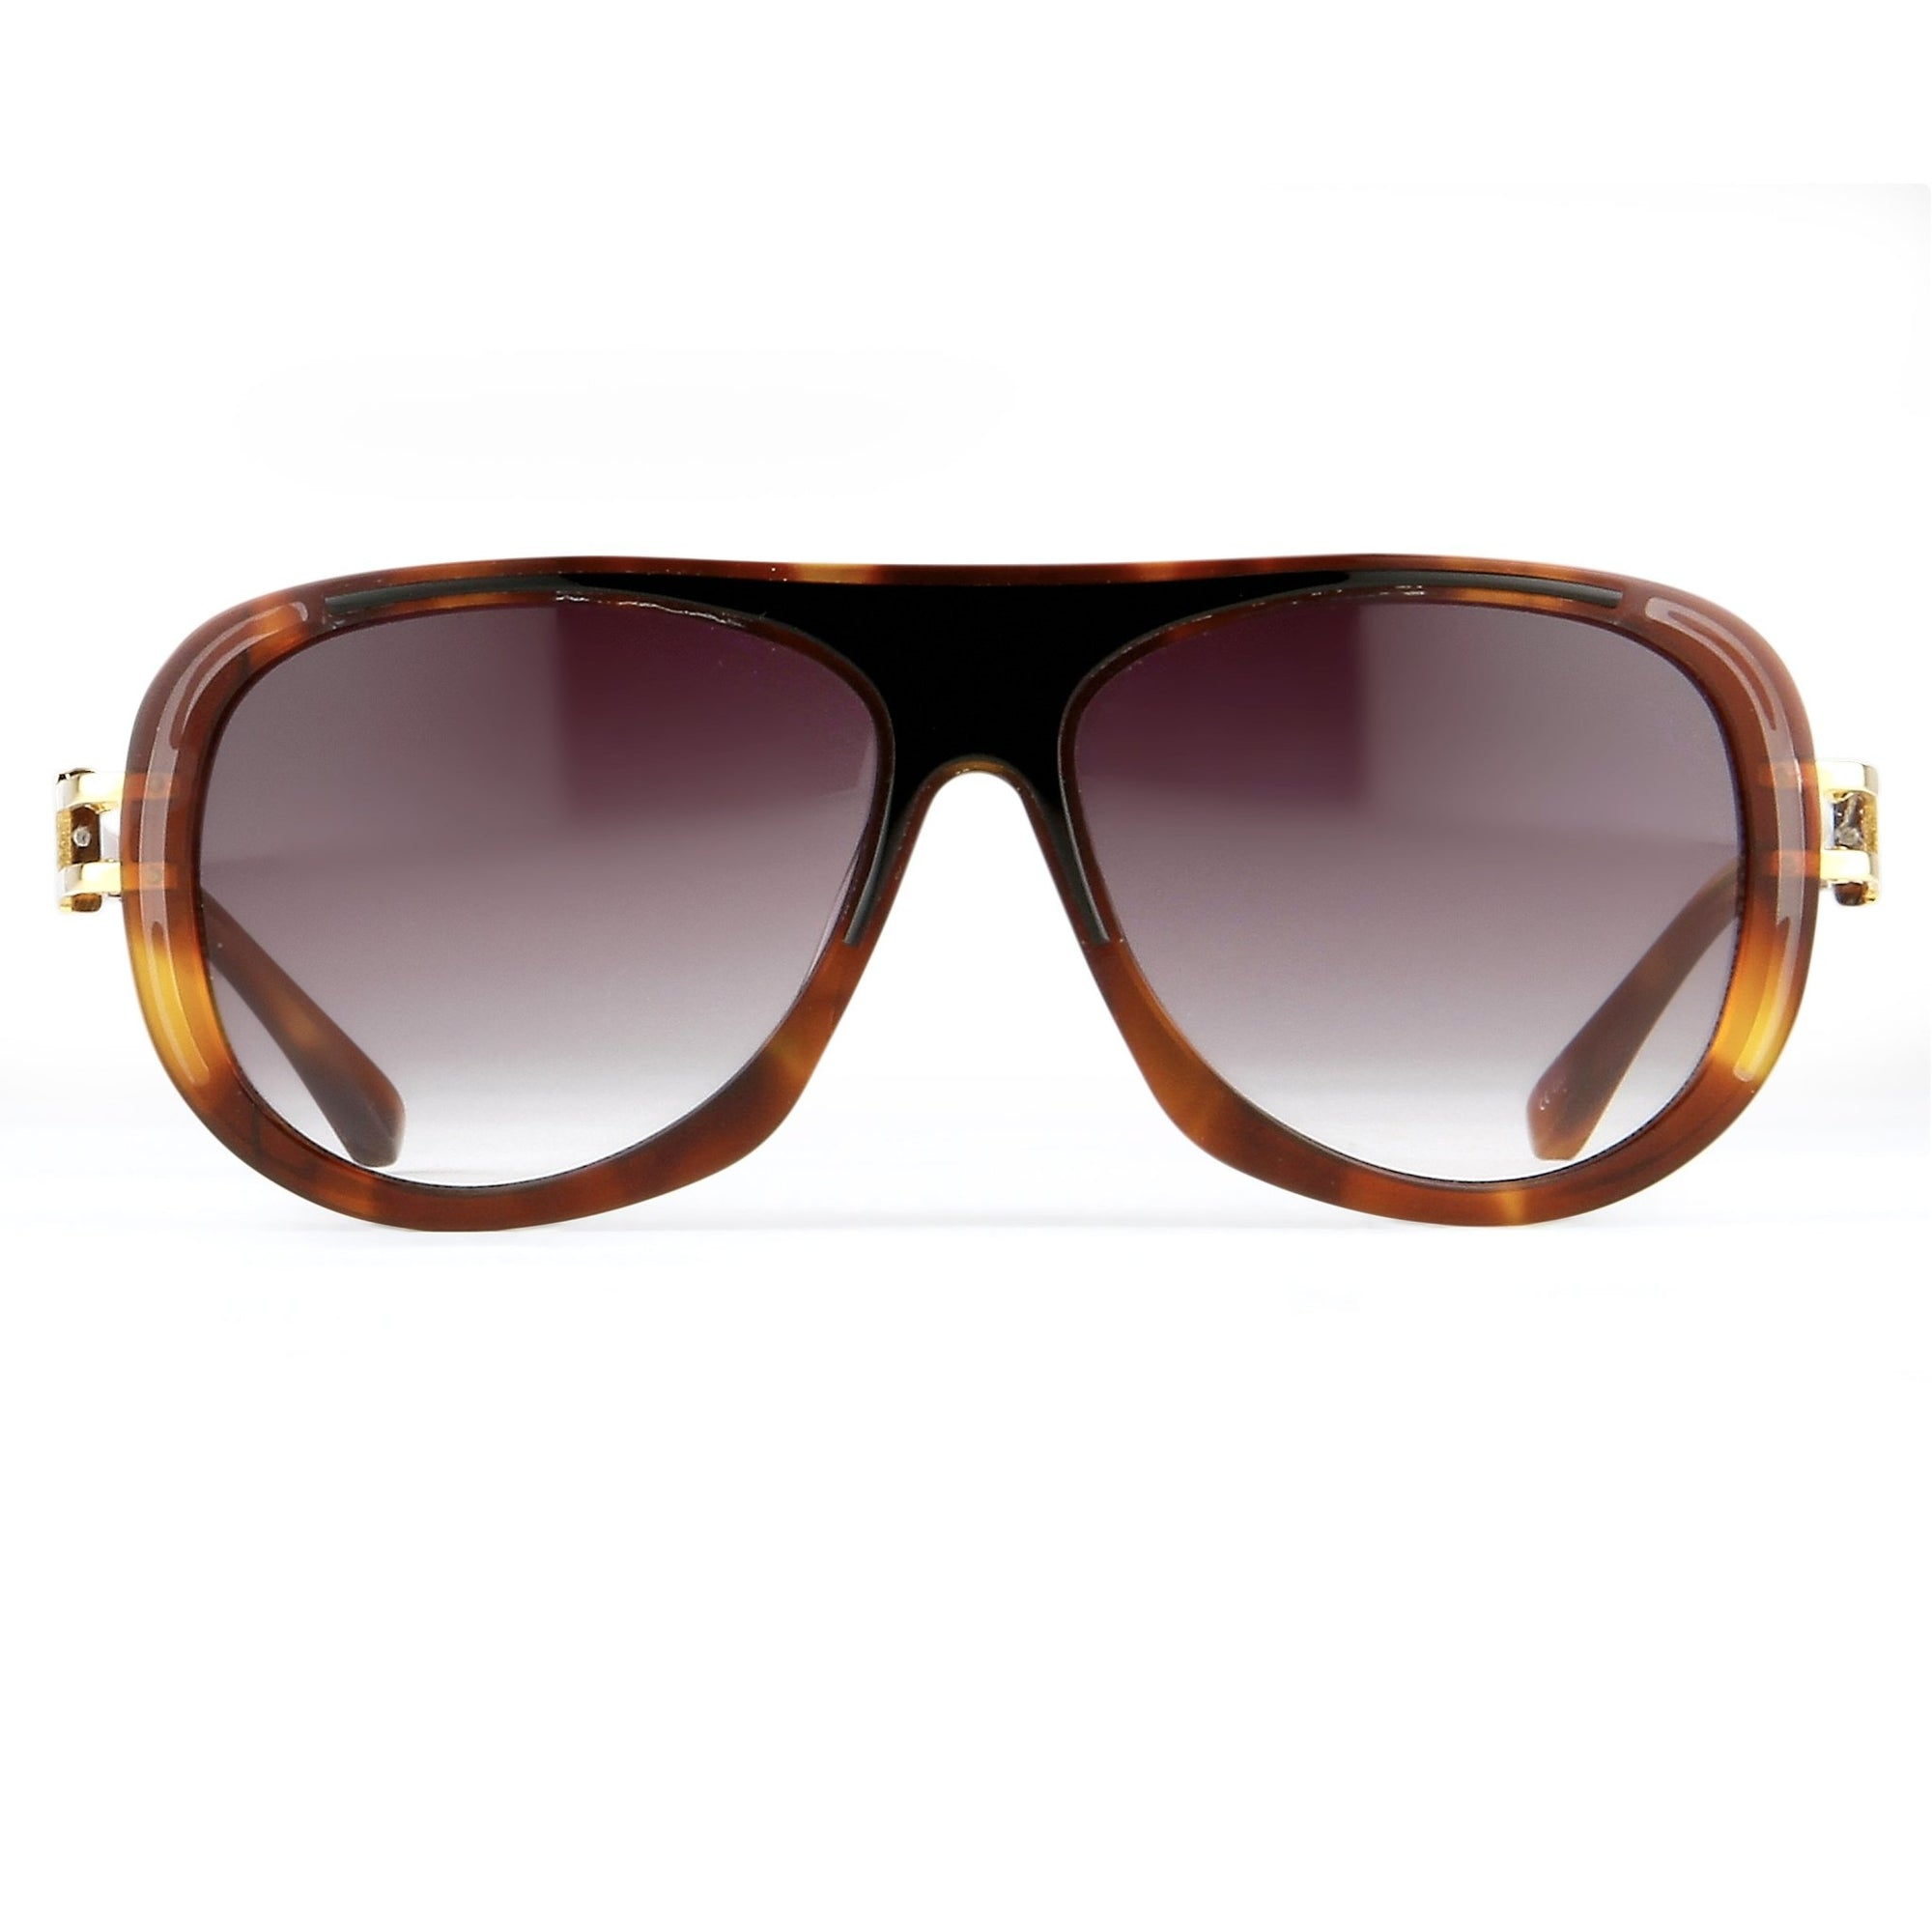 Prabal Gurung Sunglasses Female Aviator Tortoise Shell Acetate CAT3 Grey Lenses PG10C3SUN - Watches & Crystals